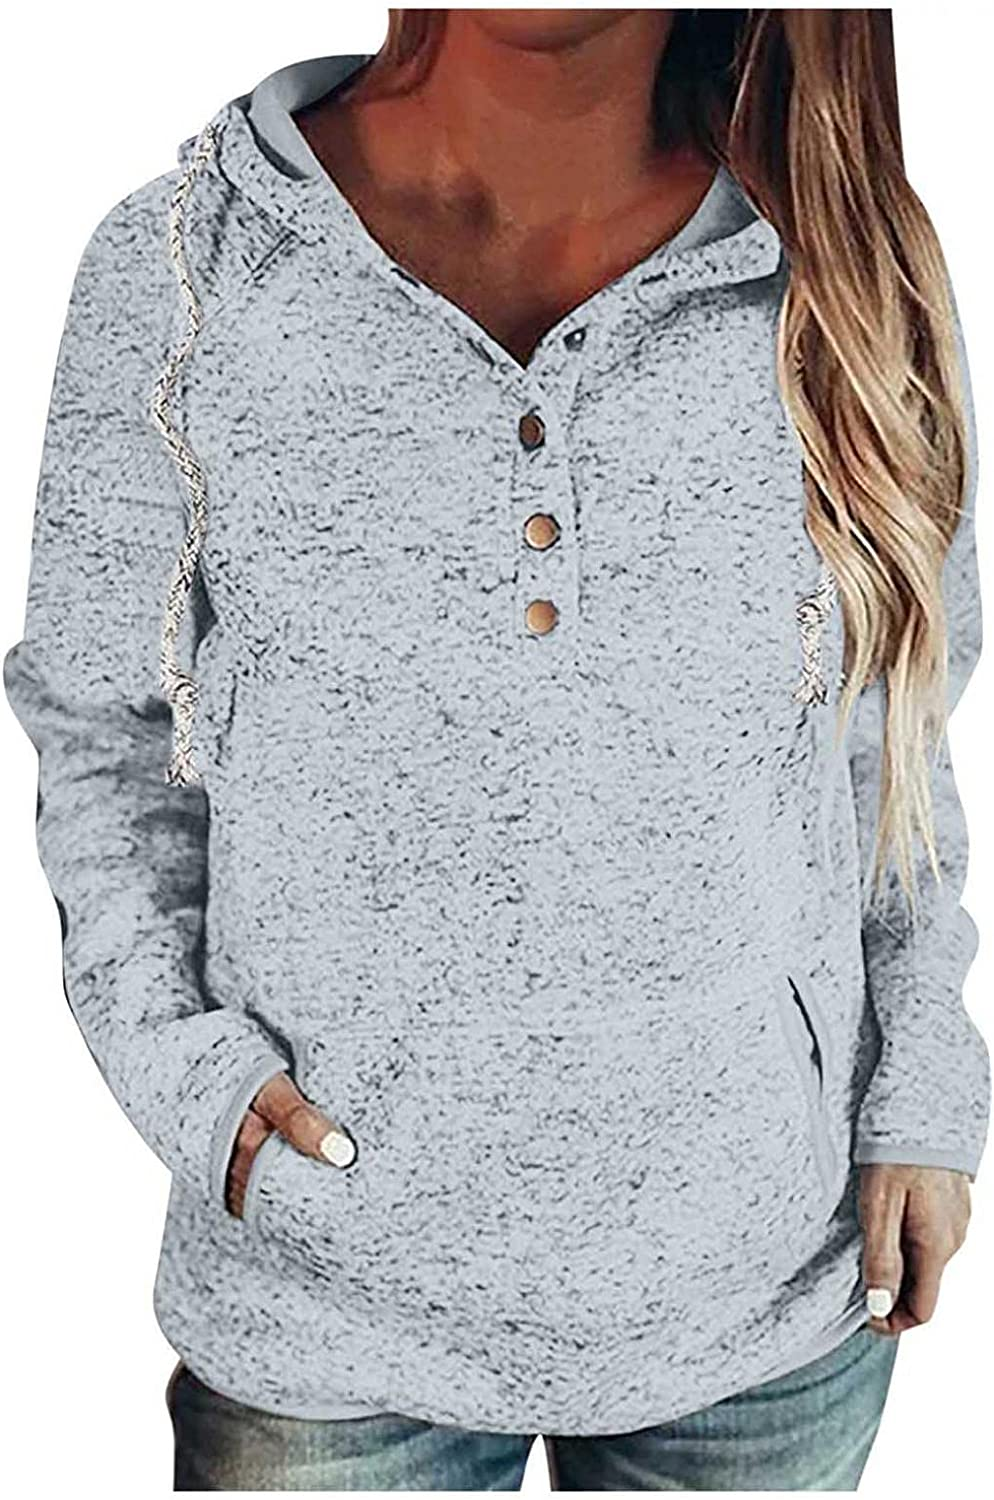 Womens Button Collar Drawstring Stitching Sweatshirts Hoodies Pullover, Loose Casual Long Sleeve Tops Jumper Sweaters